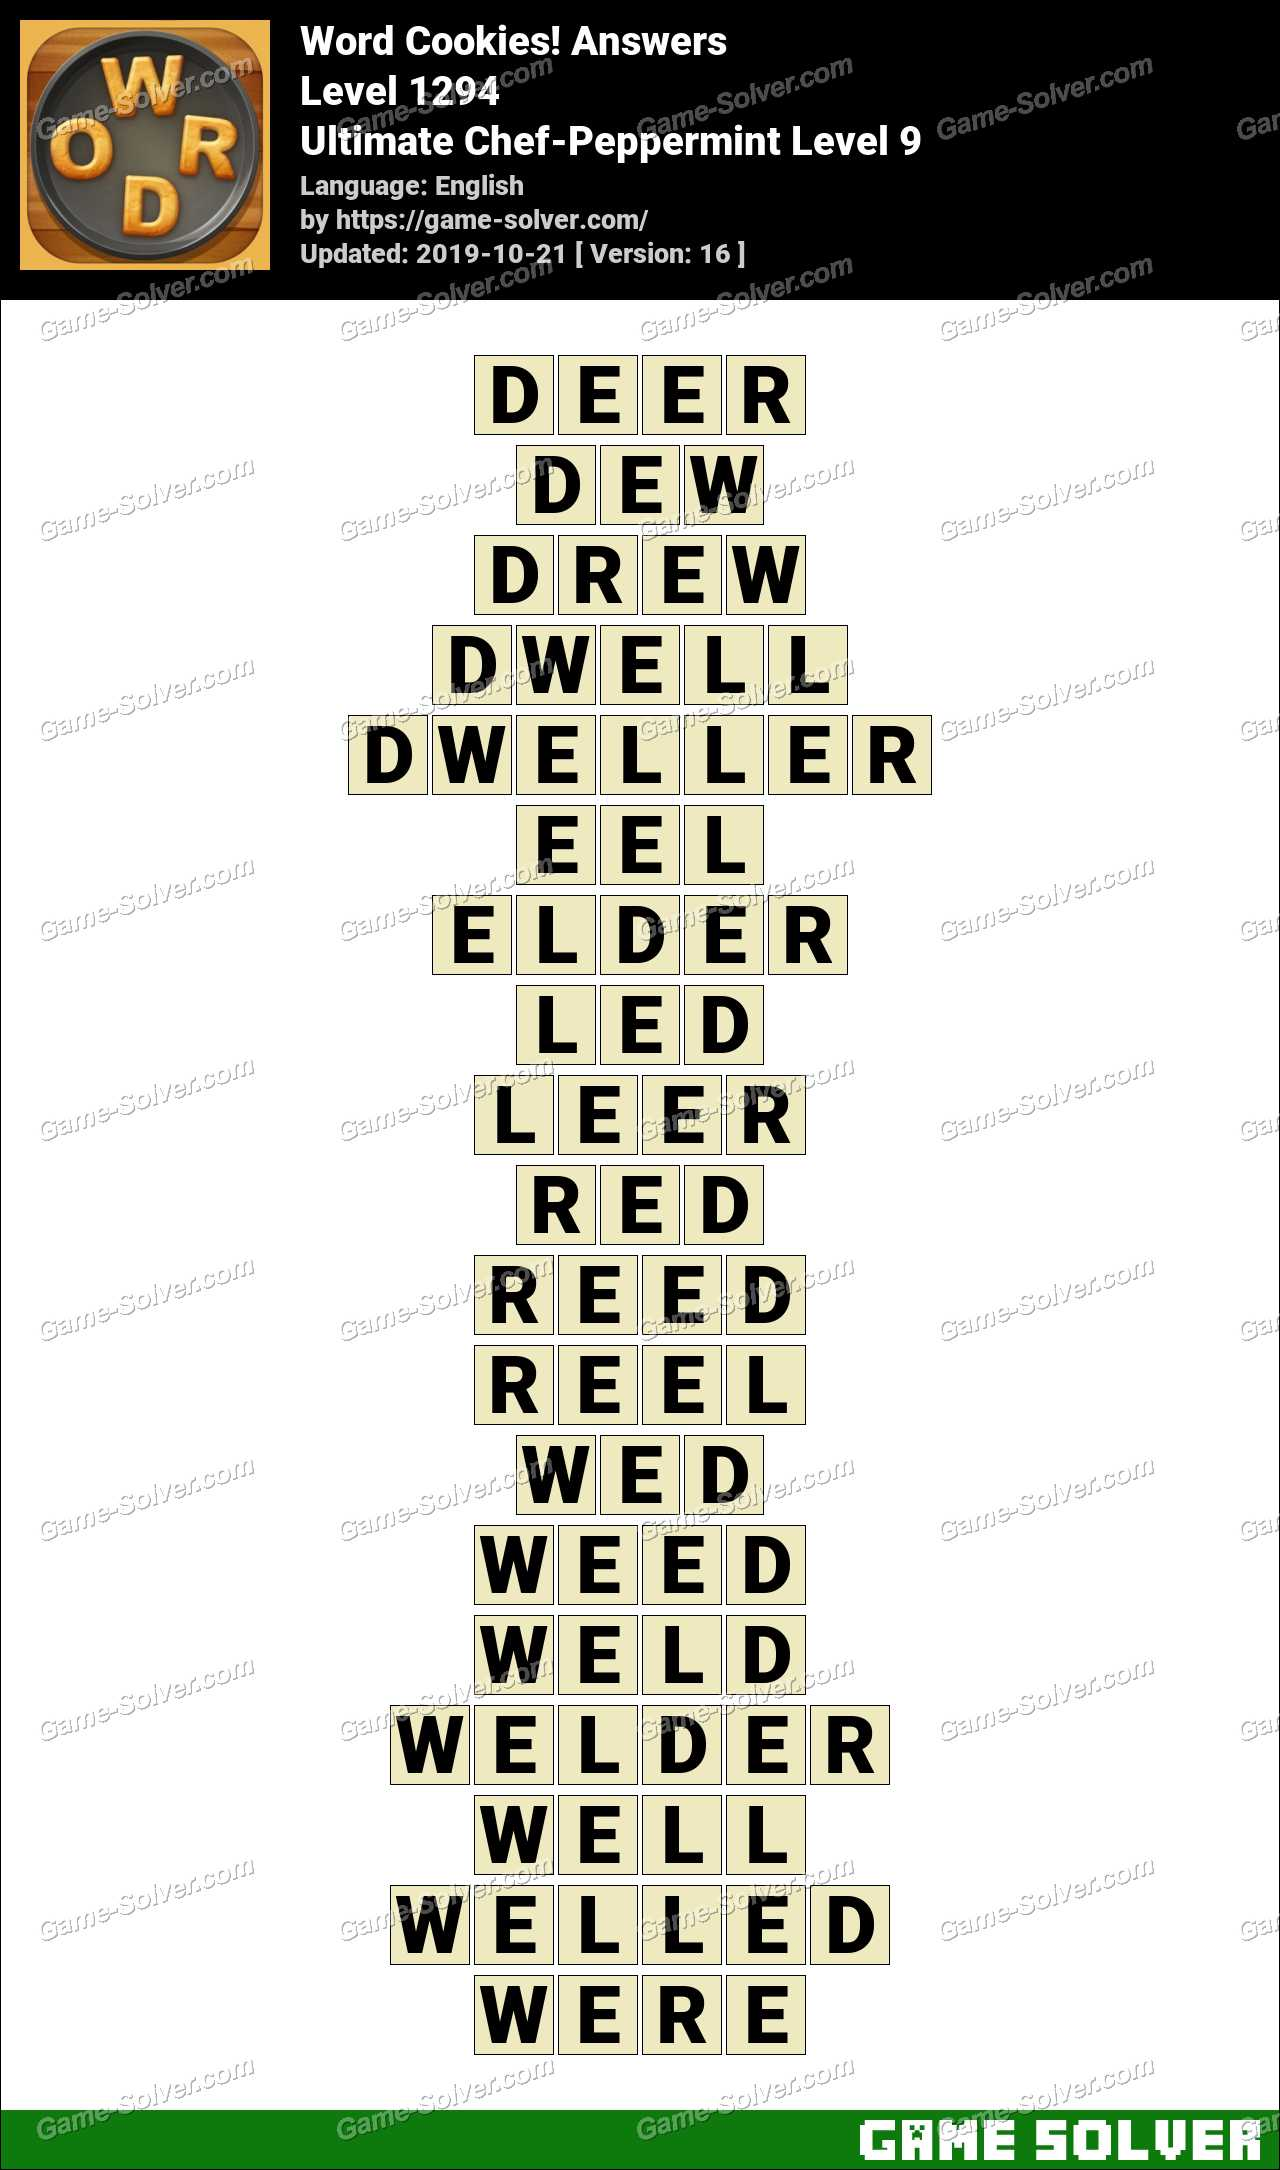 Word Cookies Ultimate Chef-Peppermint Level 9 Answers